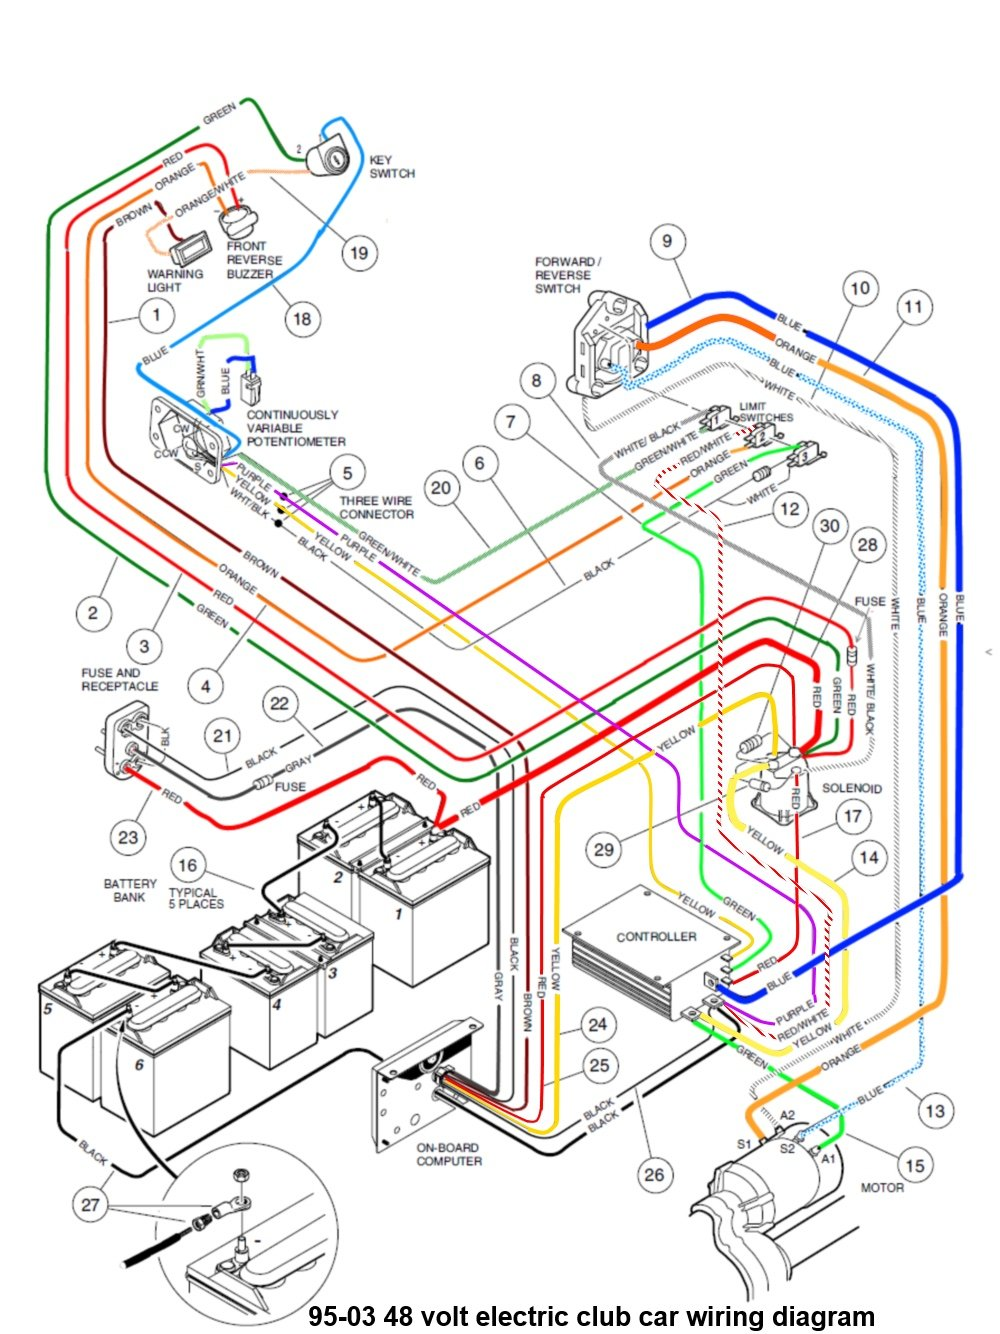 club car ds wiring diagram 48 volt 1985 club car ds wiring diagram club car top speed doesn't seem right - page 2